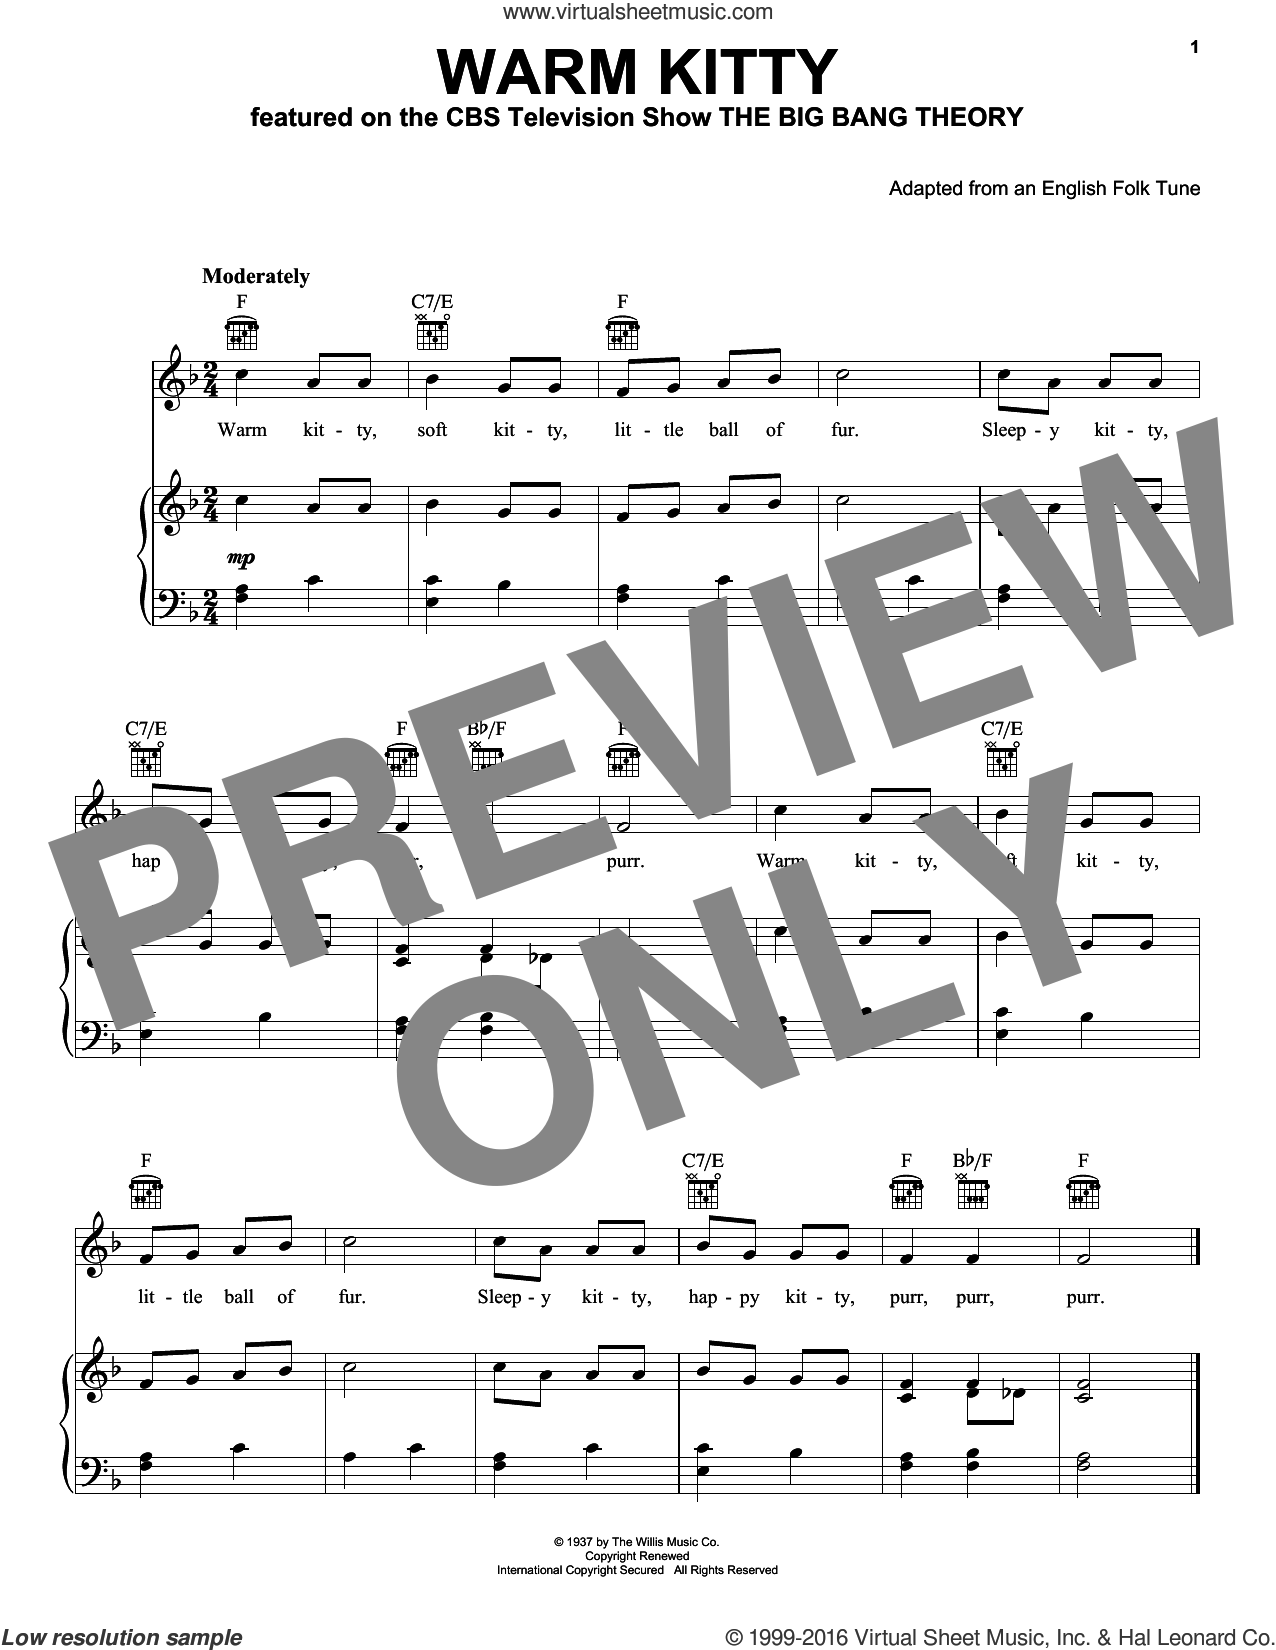 Warm Kitty sheet music for voice, piano or guitar by English Folk Tune (adapted), intermediate skill level